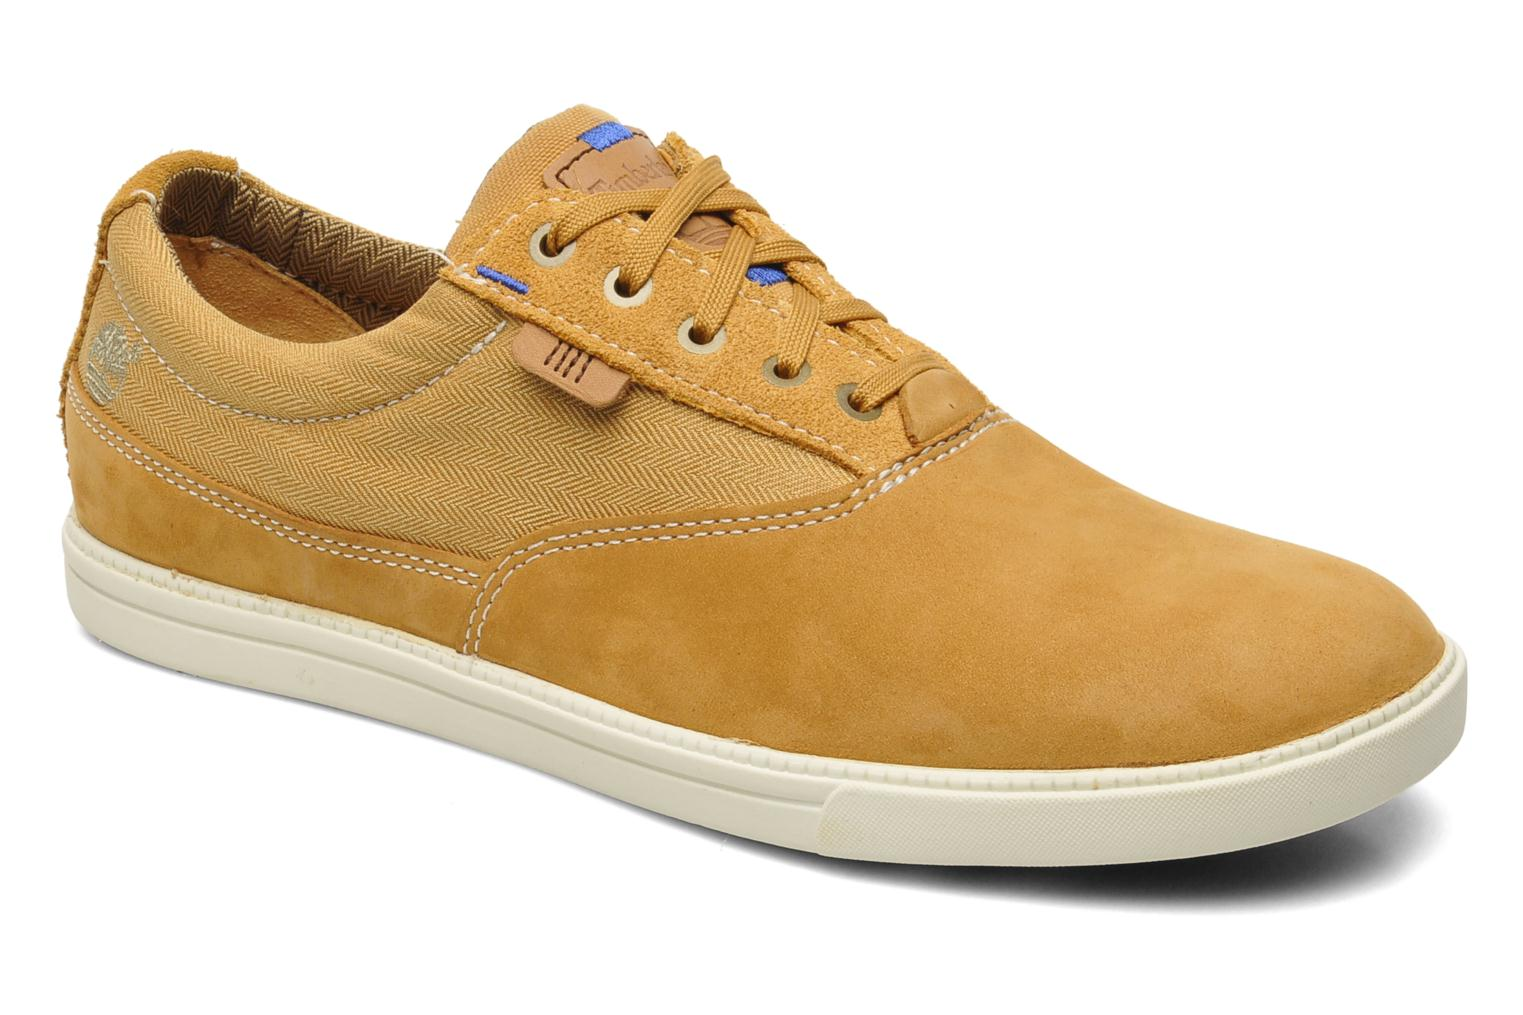 Fulk Leather And Fabric Oxford - Timberland